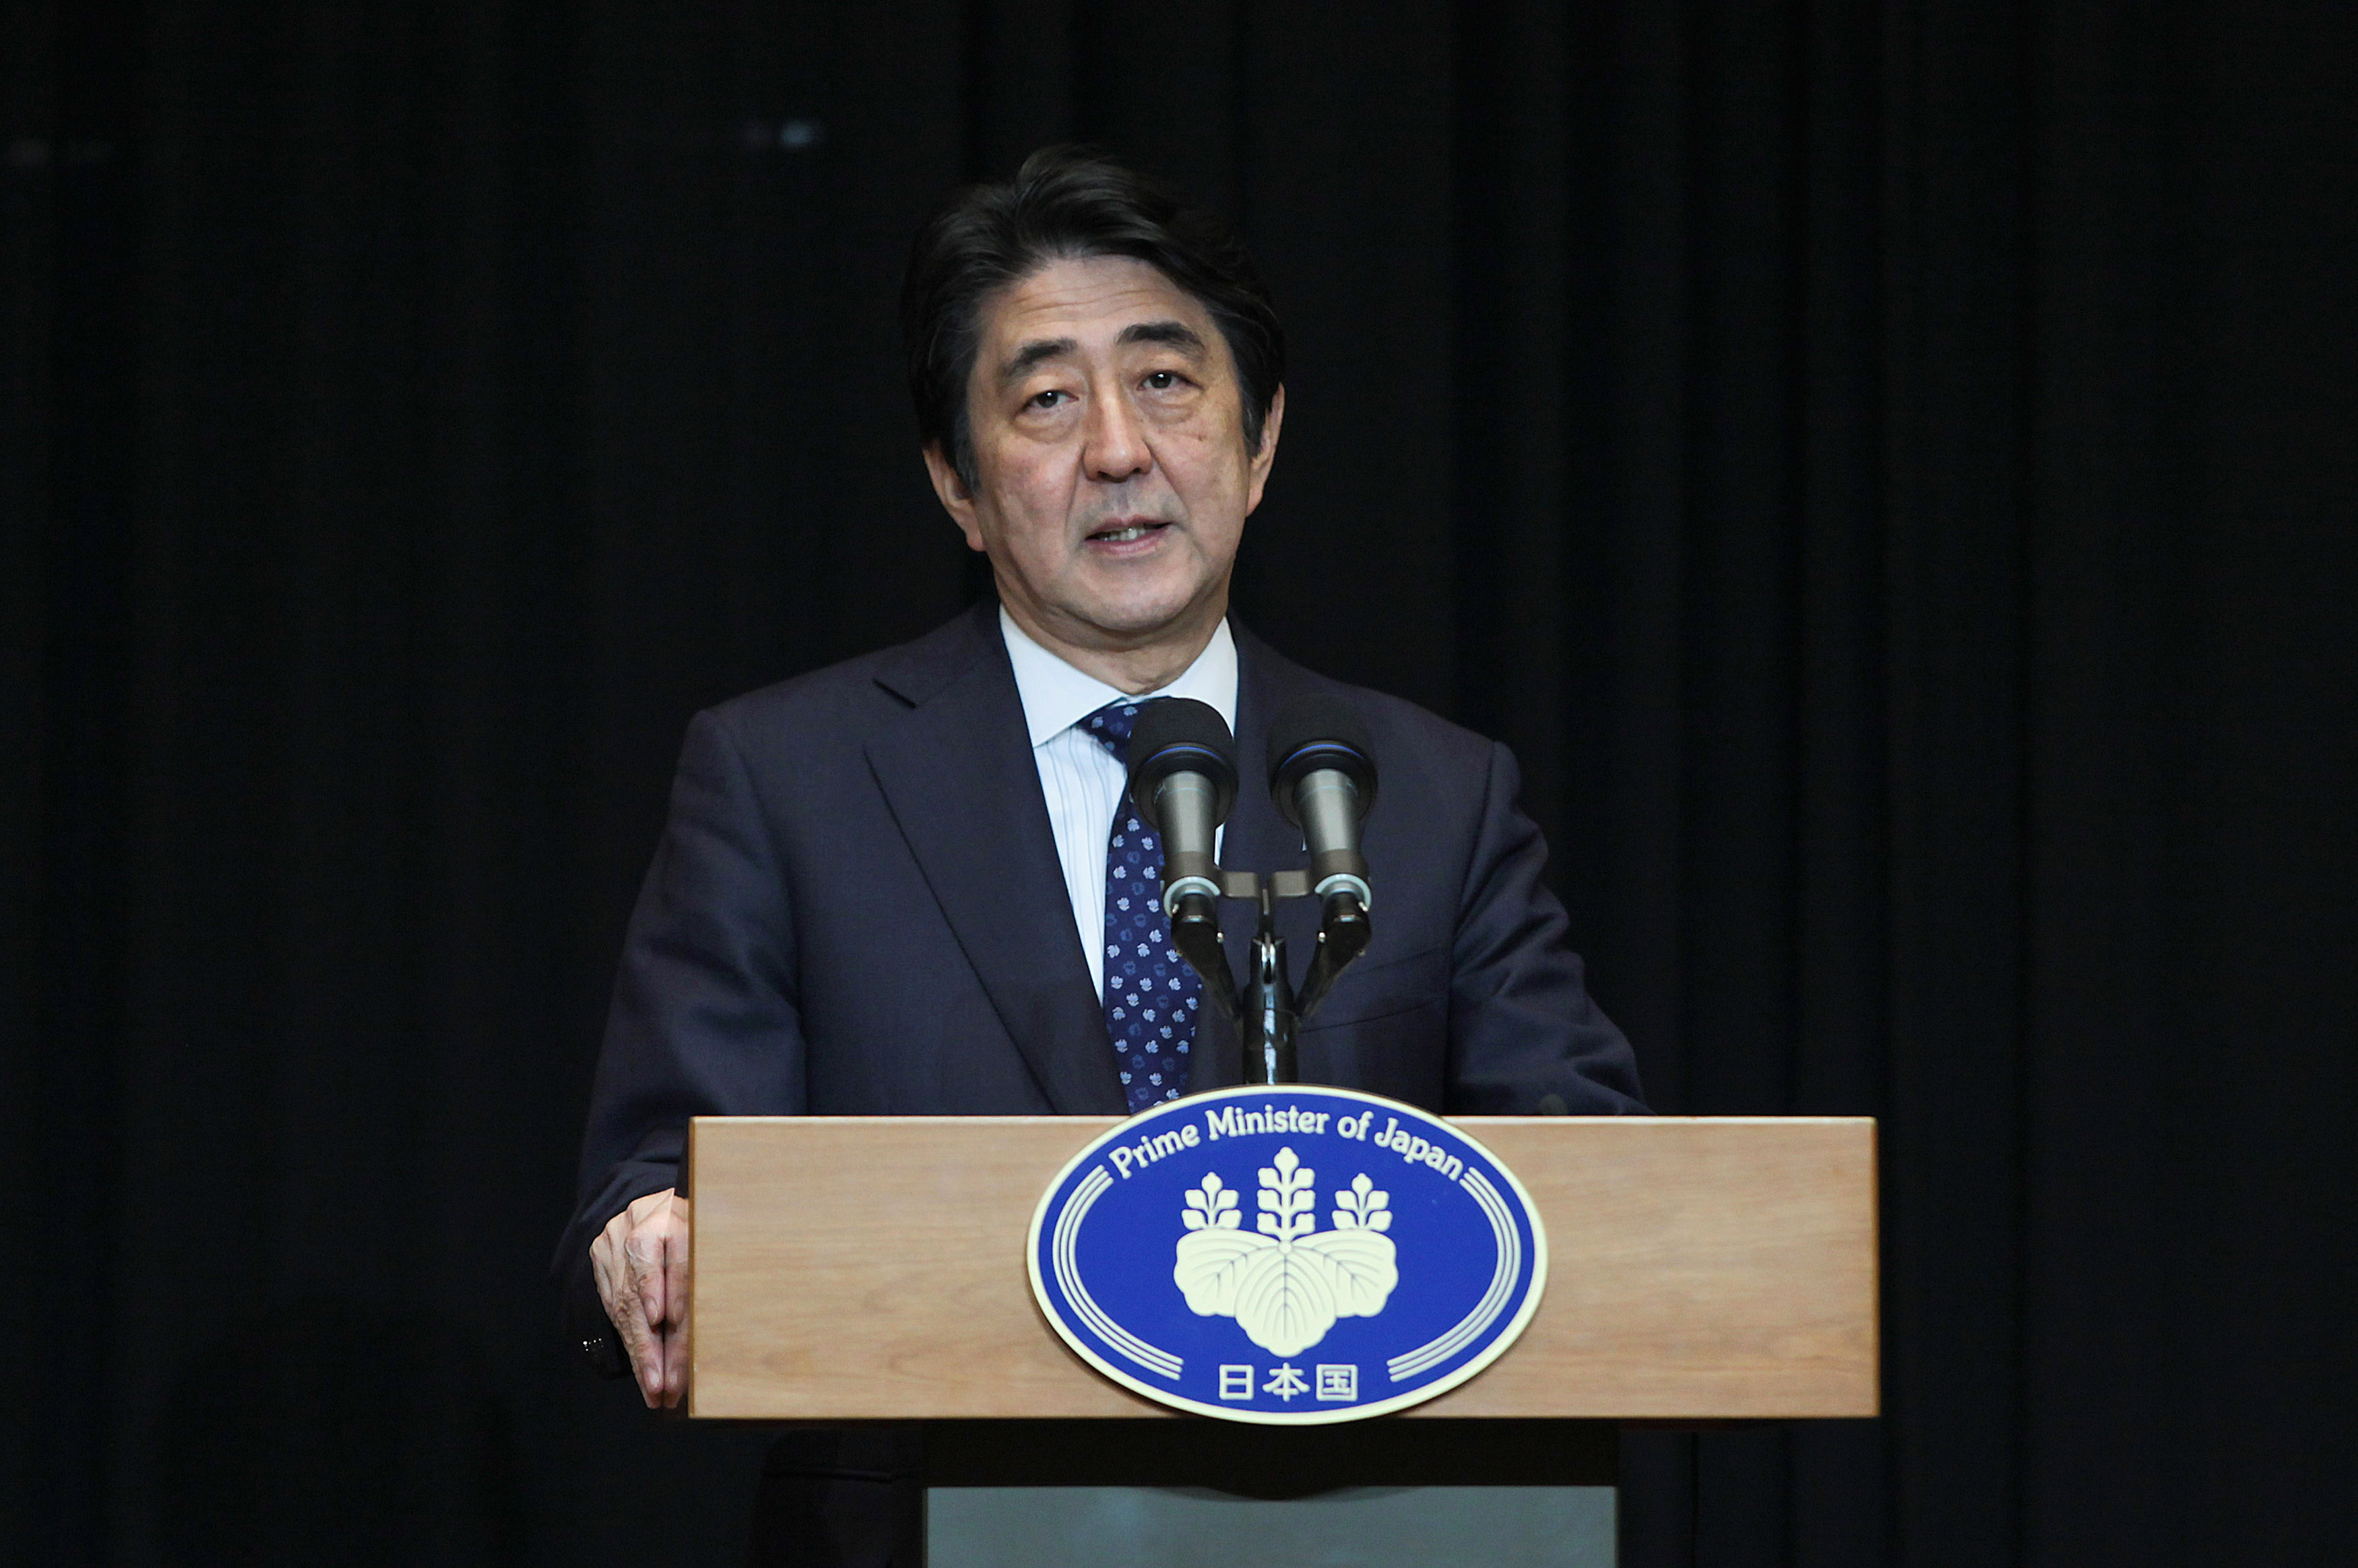 Japanese Prime Minister Shinzo Abe speaks to media during a news conference on Nov. 22, 2015, in Kuala Lumpur